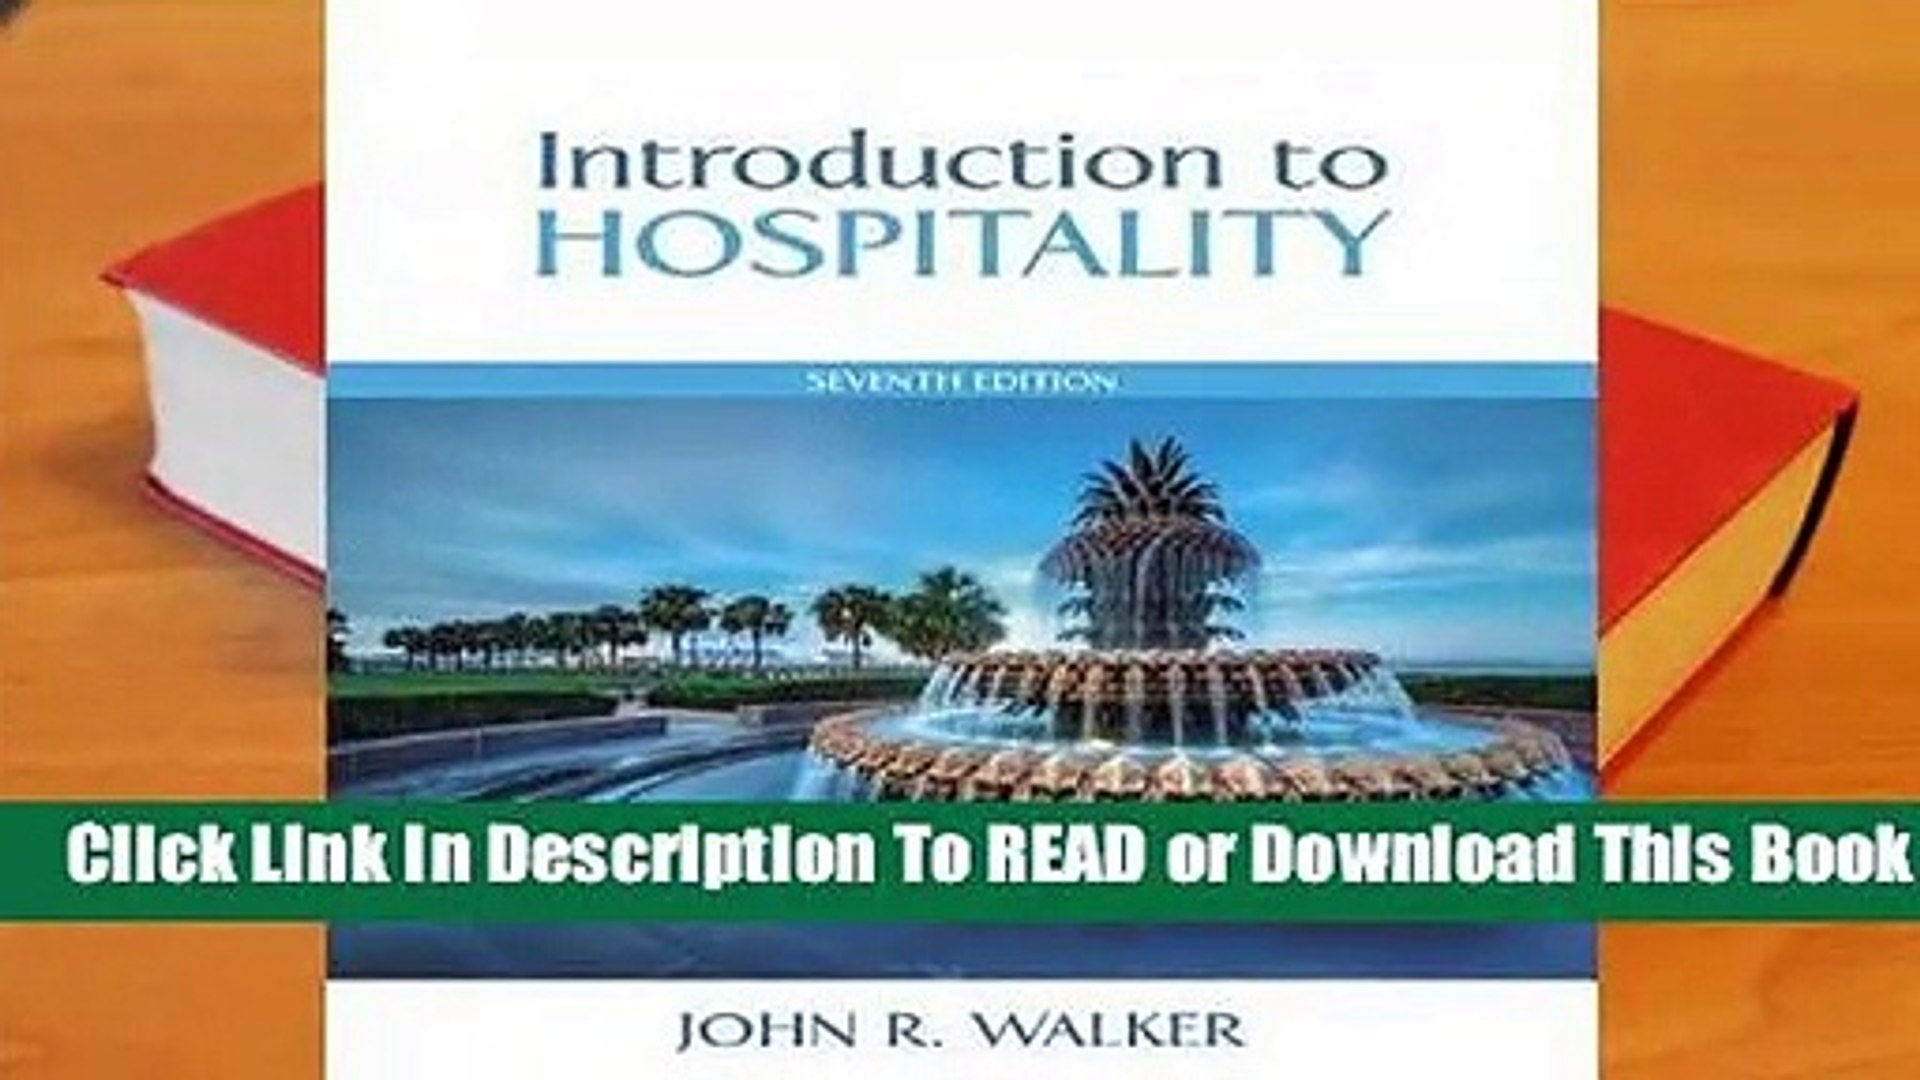 Introduction To Hospitality Book